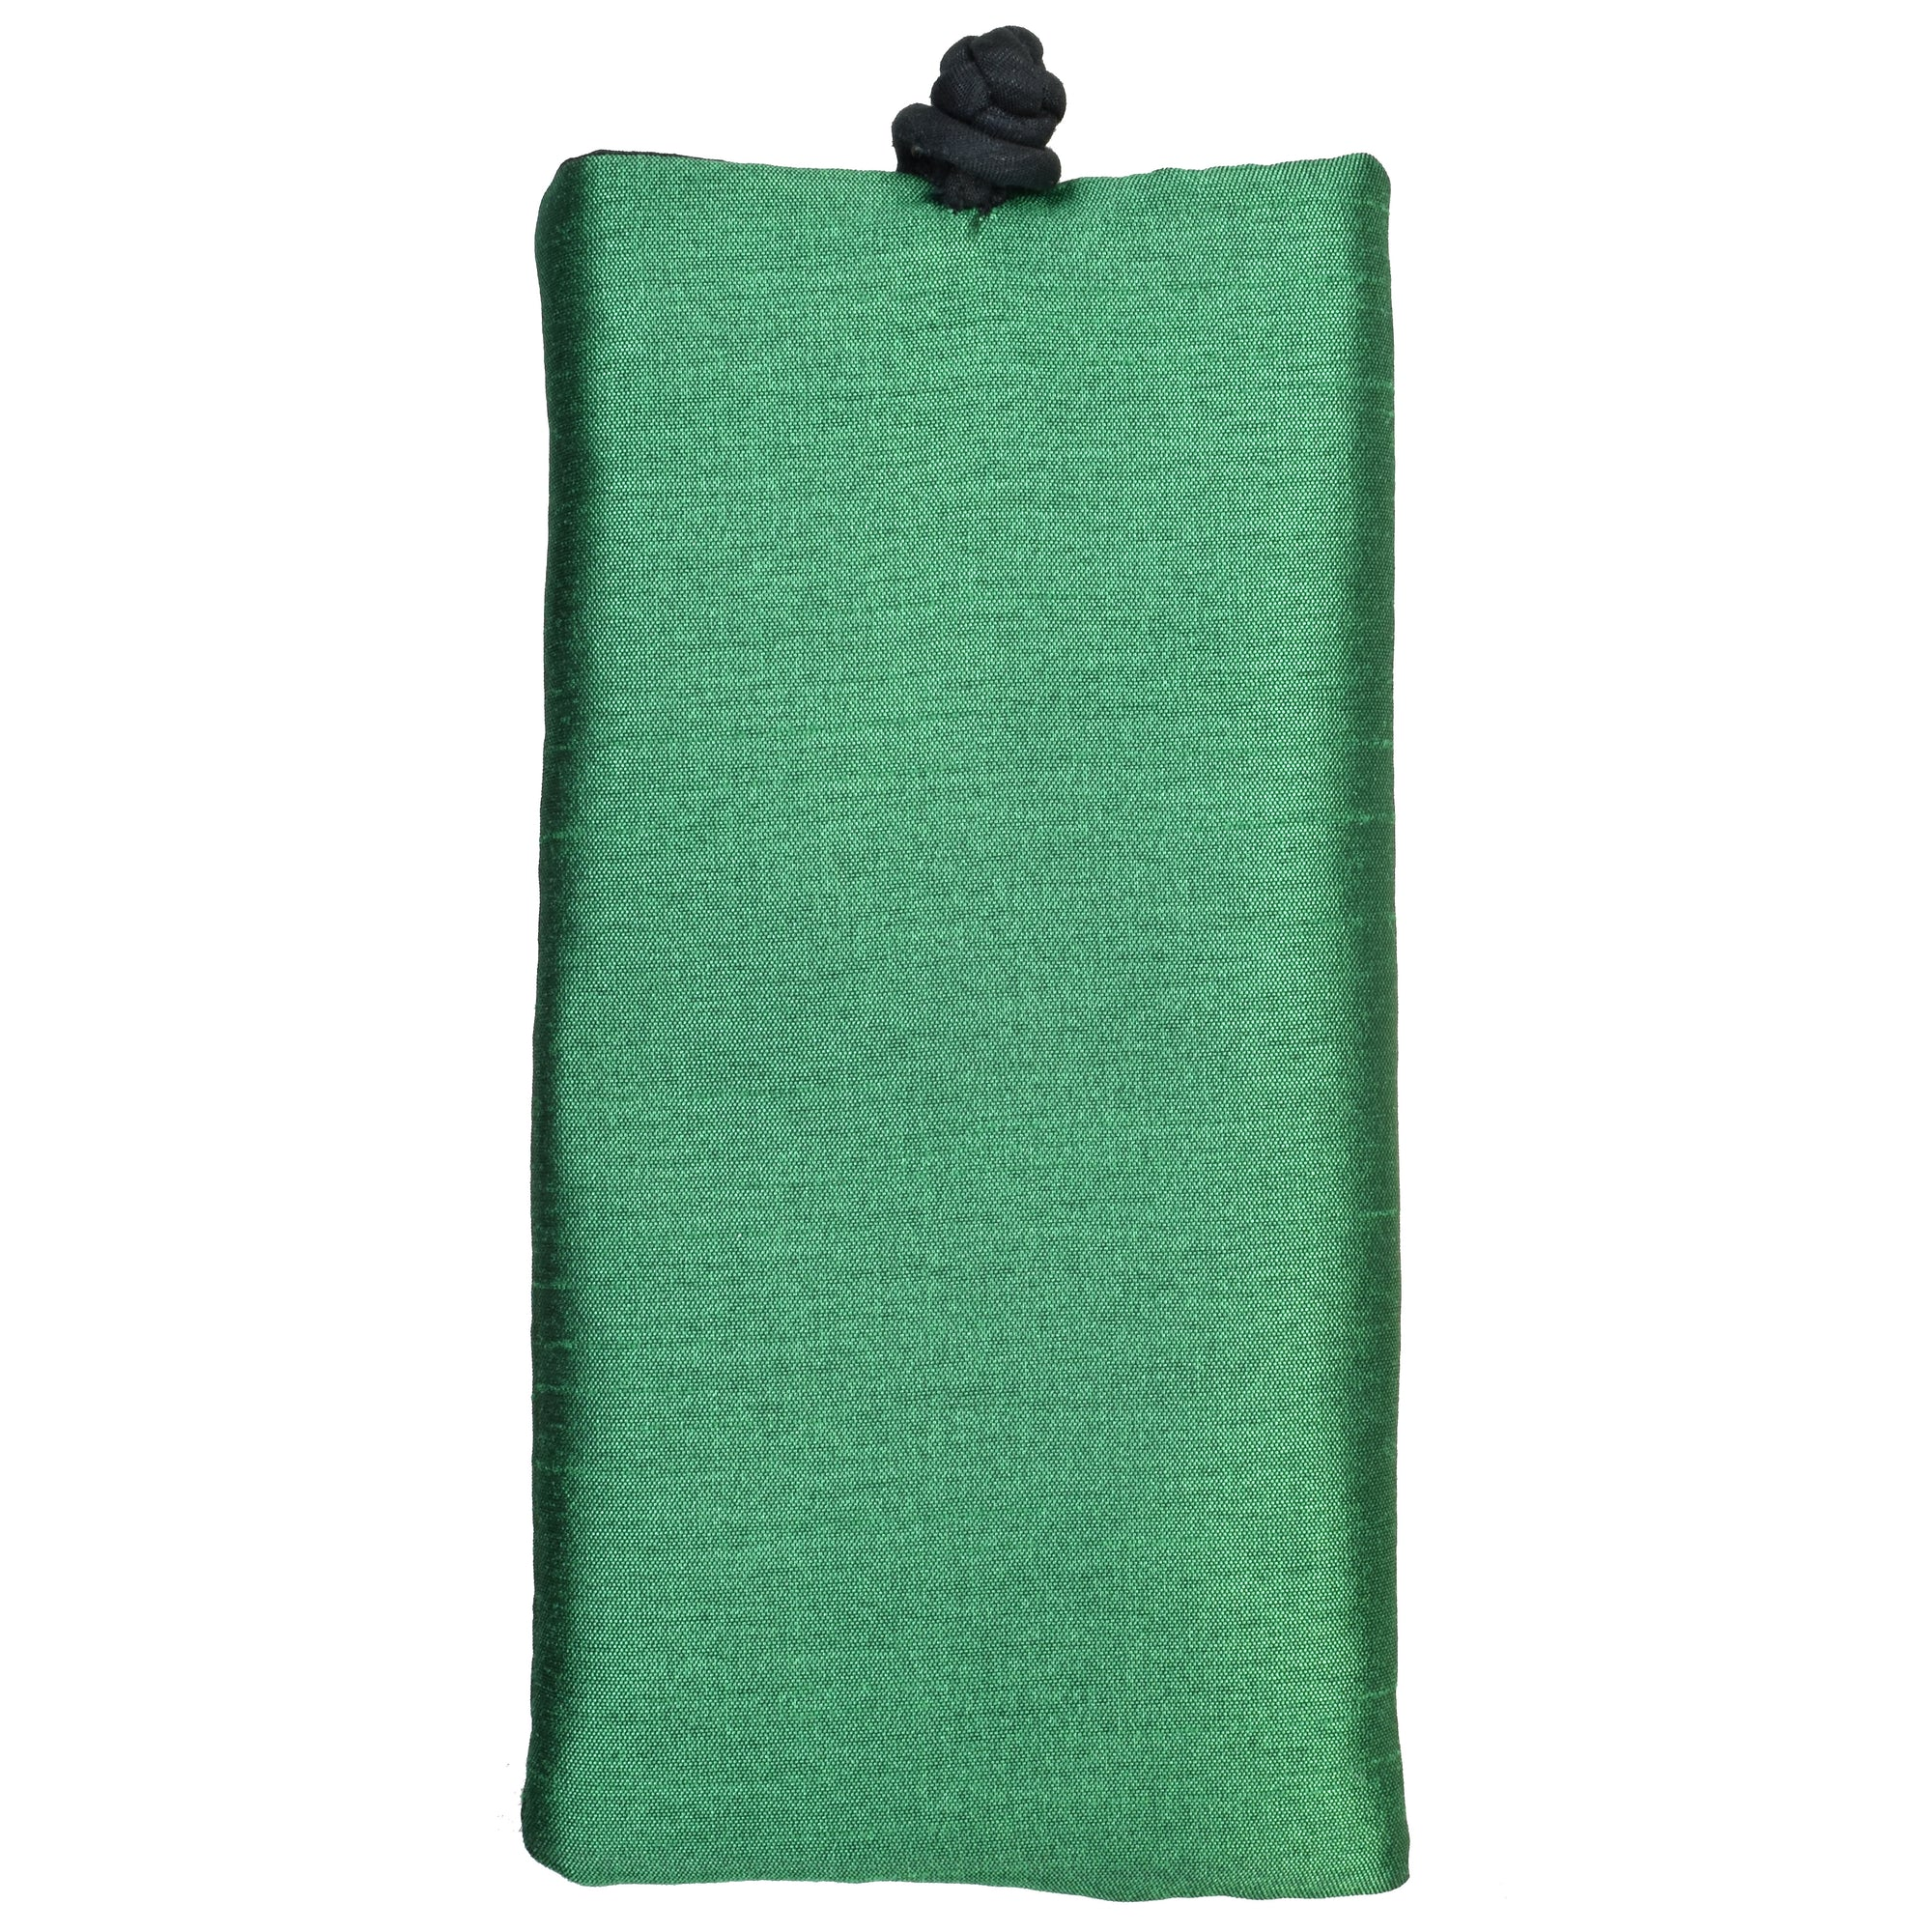 Poly Dupioni Silk Soft Eyeglass Case, Green & Black